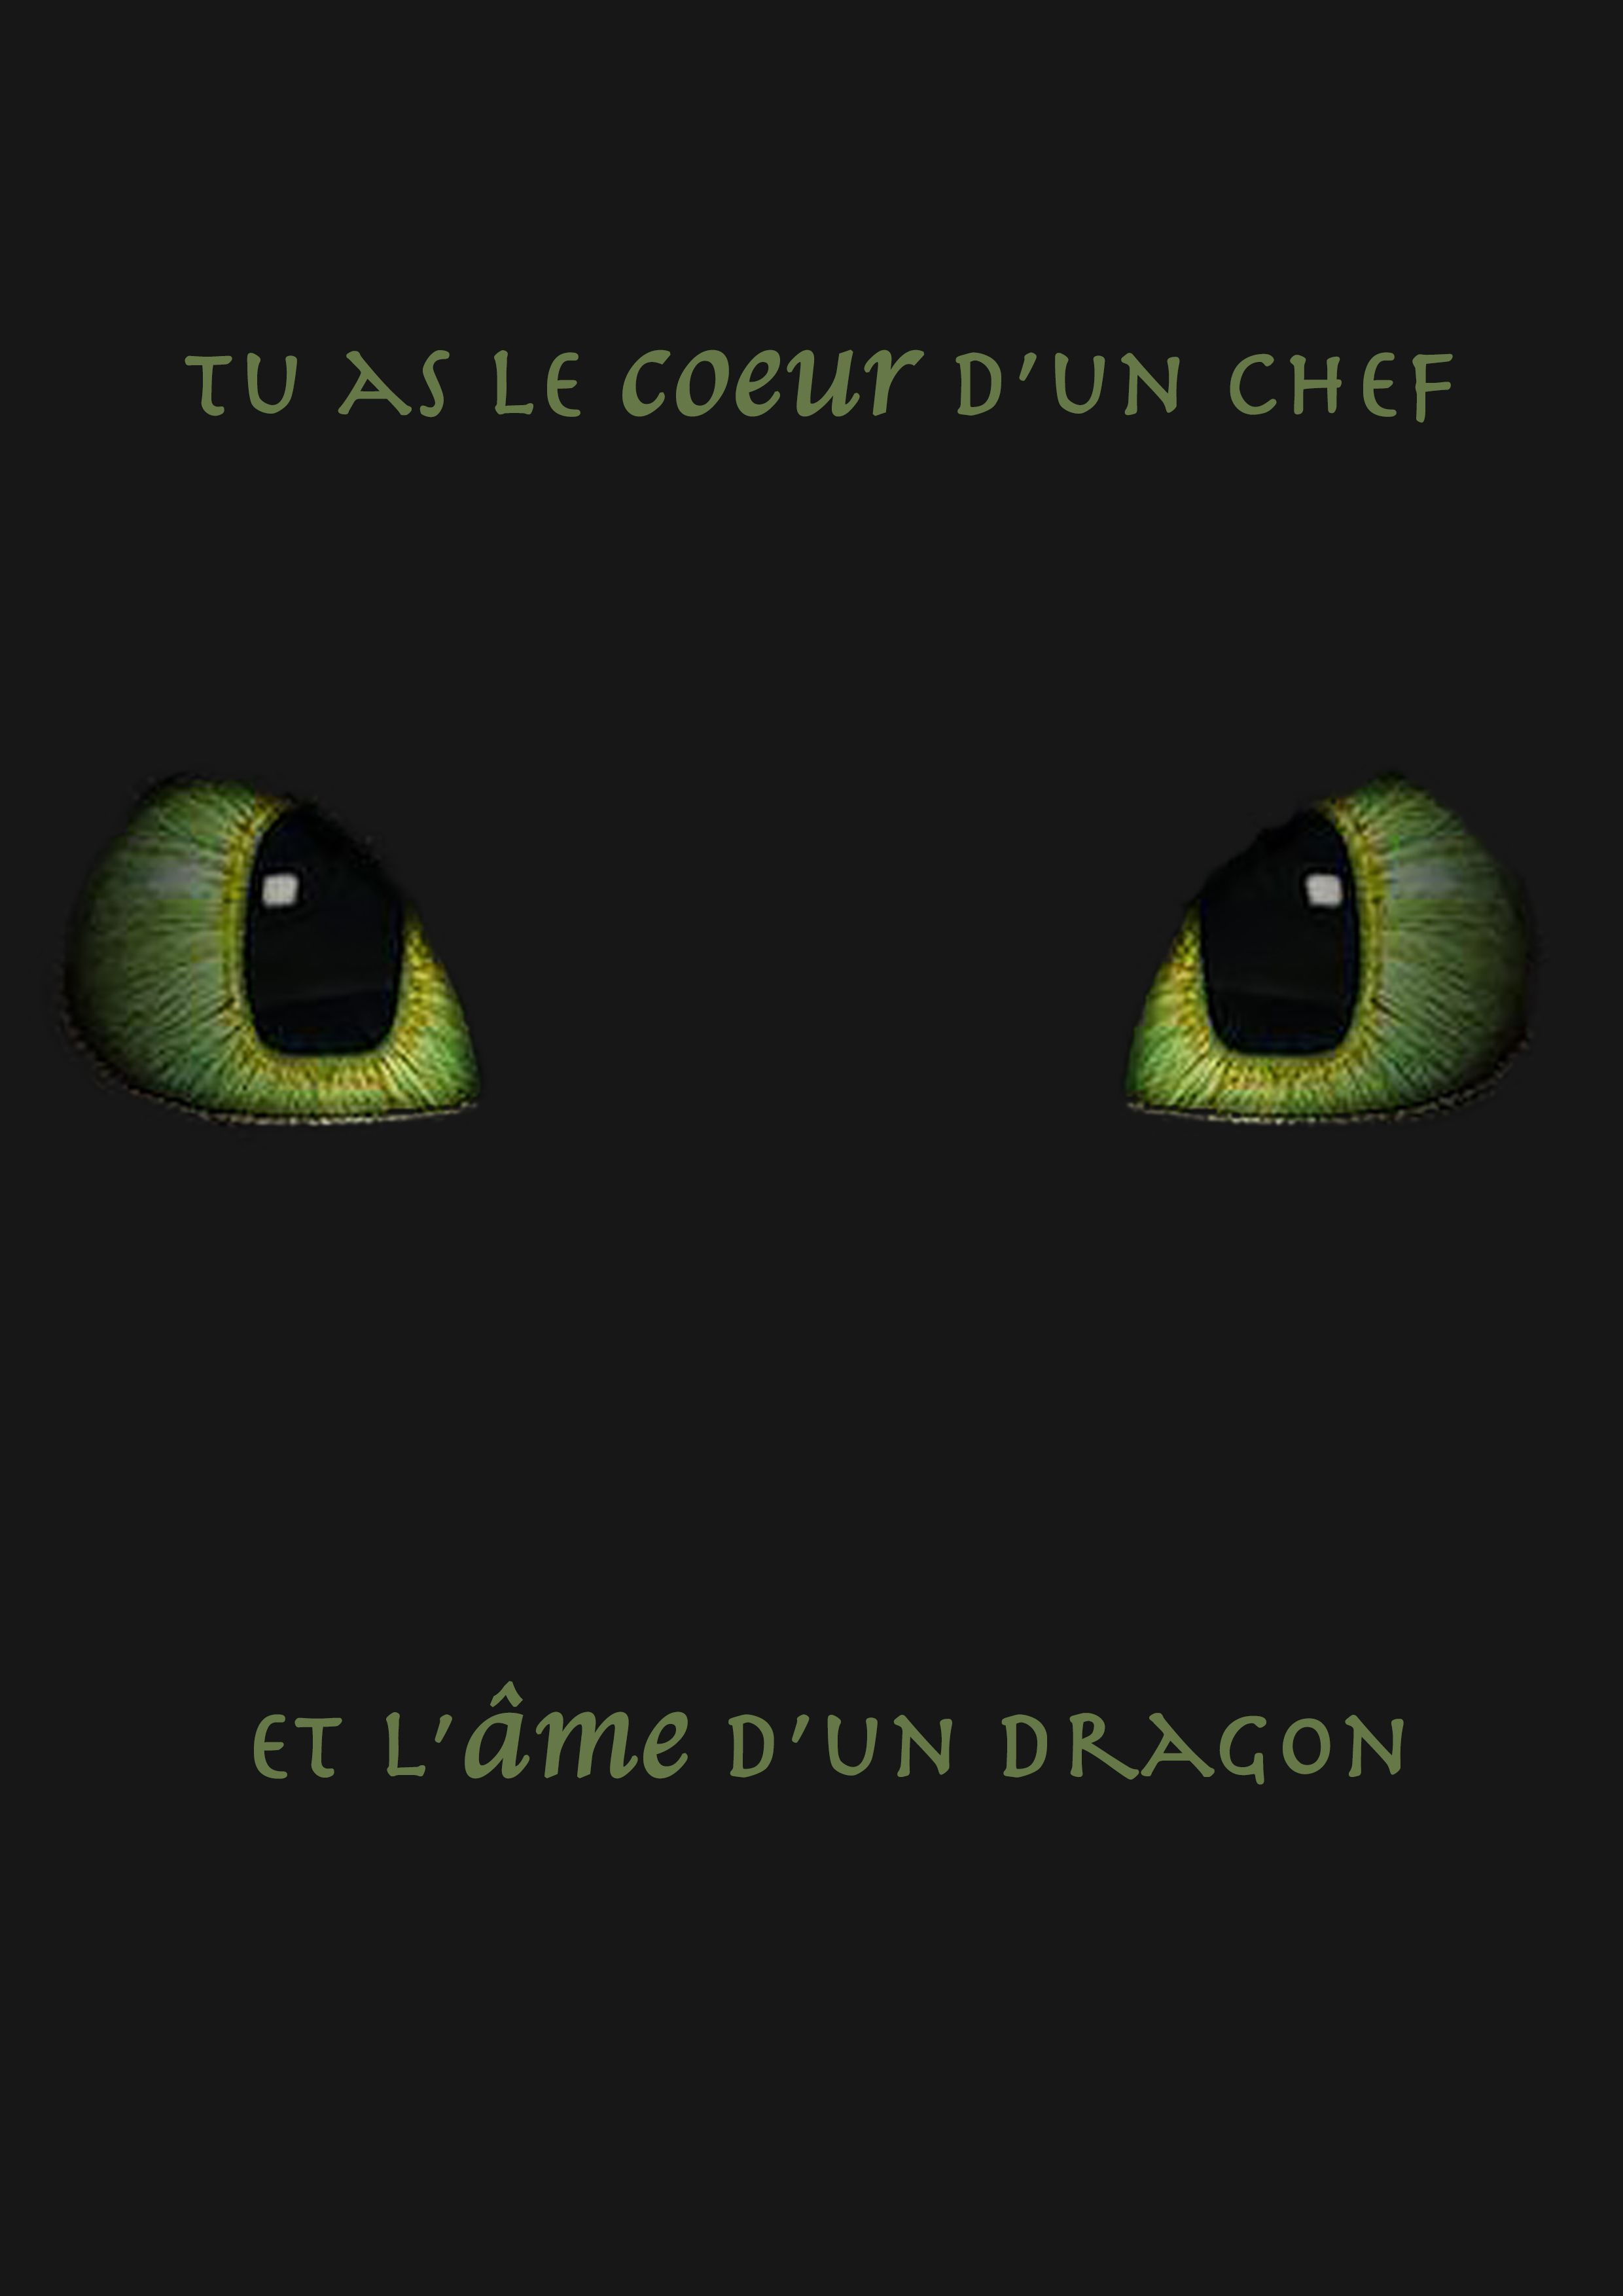 croque mou dragon